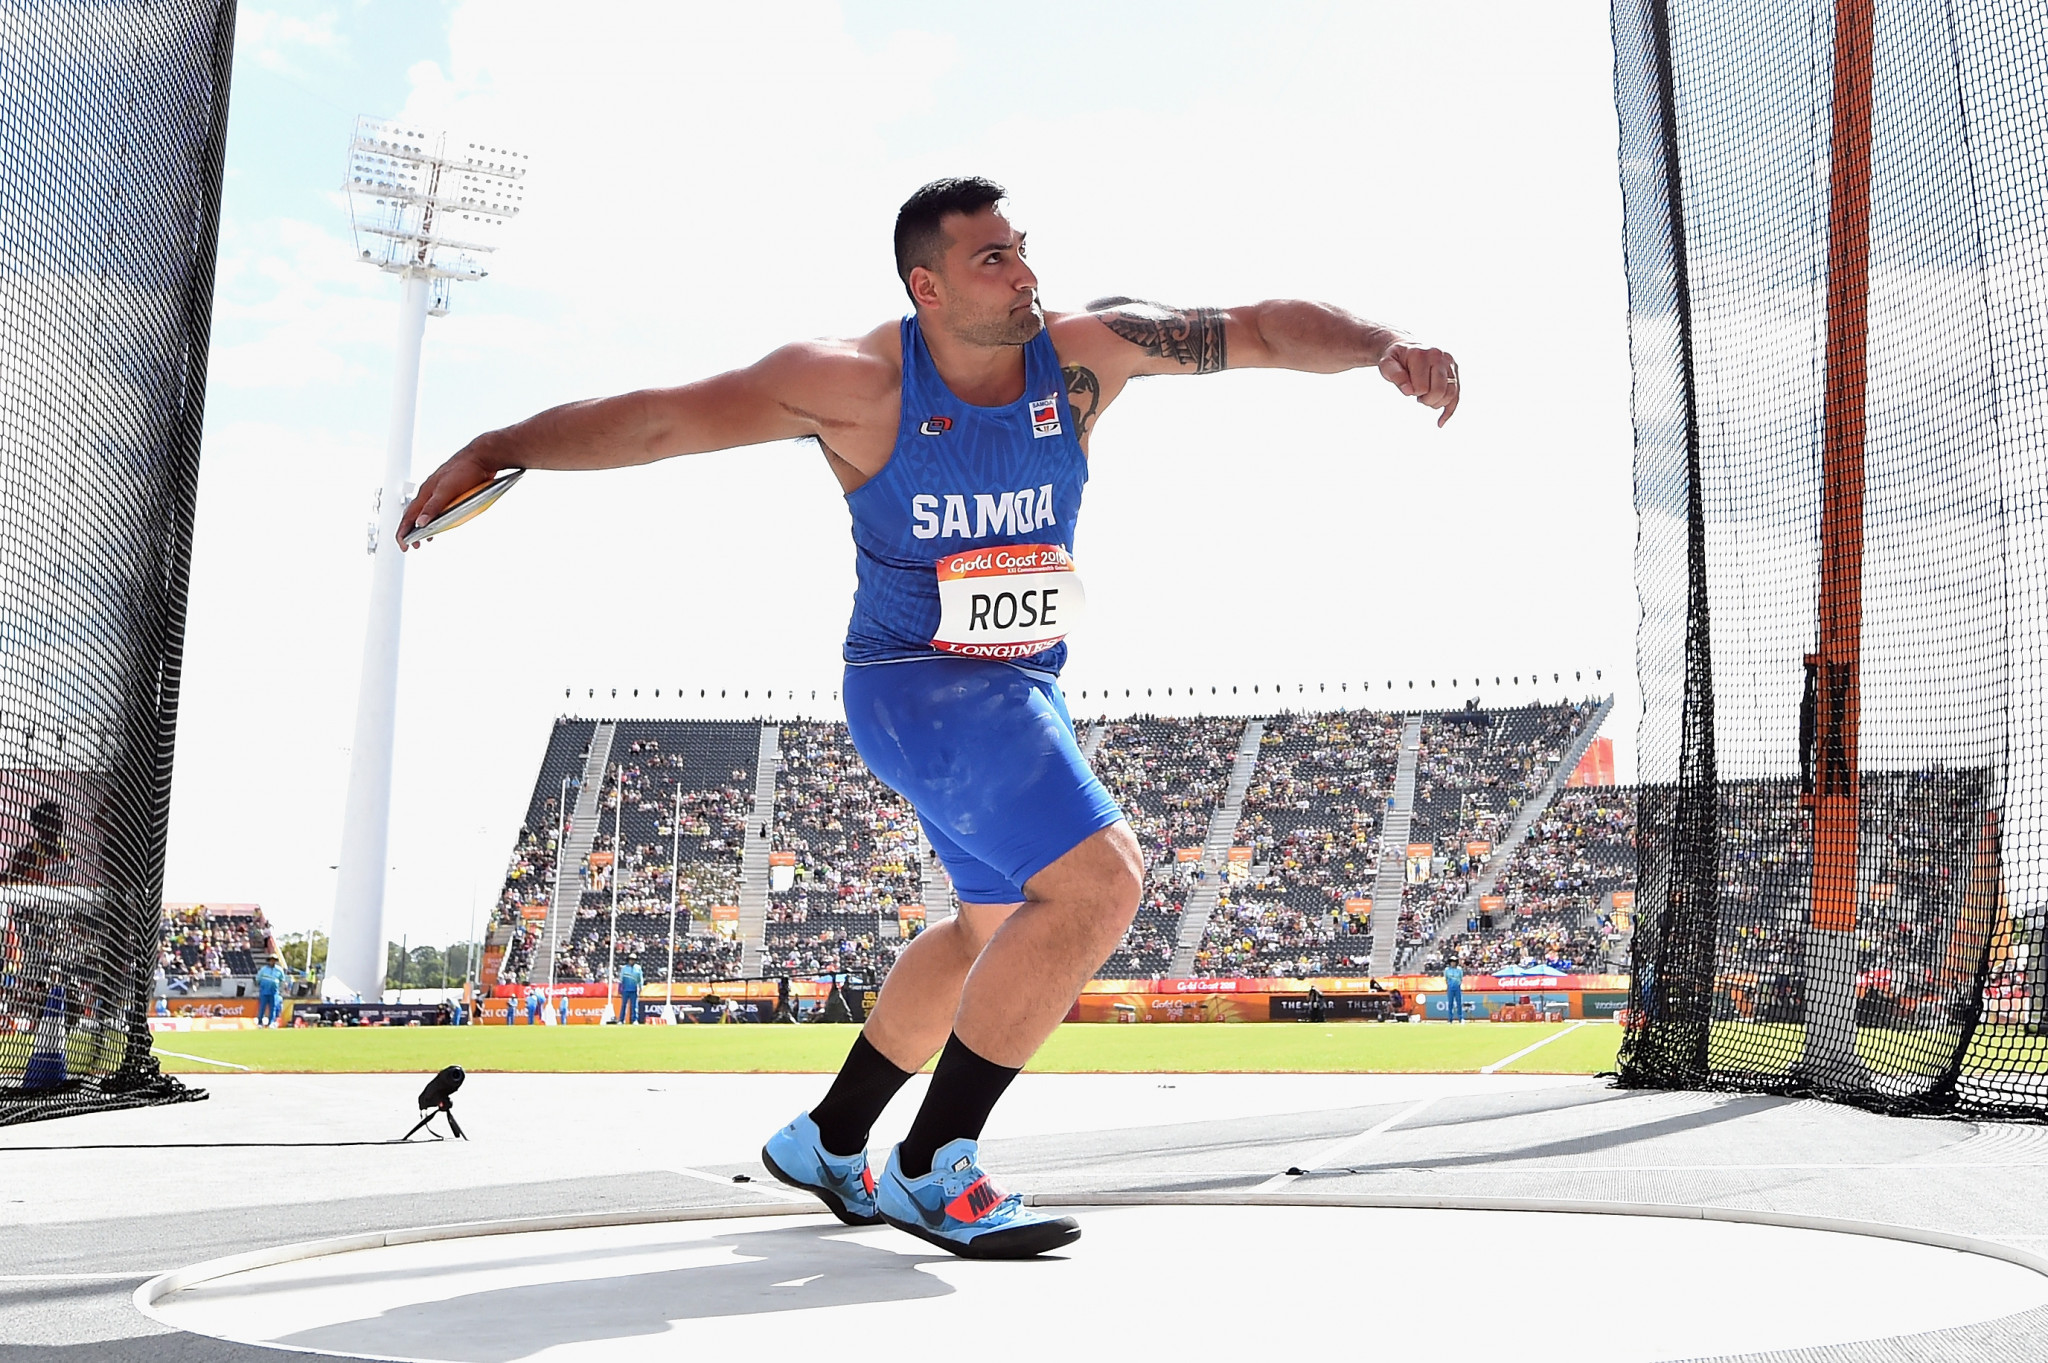 Discus thrower Alex Rose will be Samoa's flagbearer at Tokyo 2020 ©Getty Images